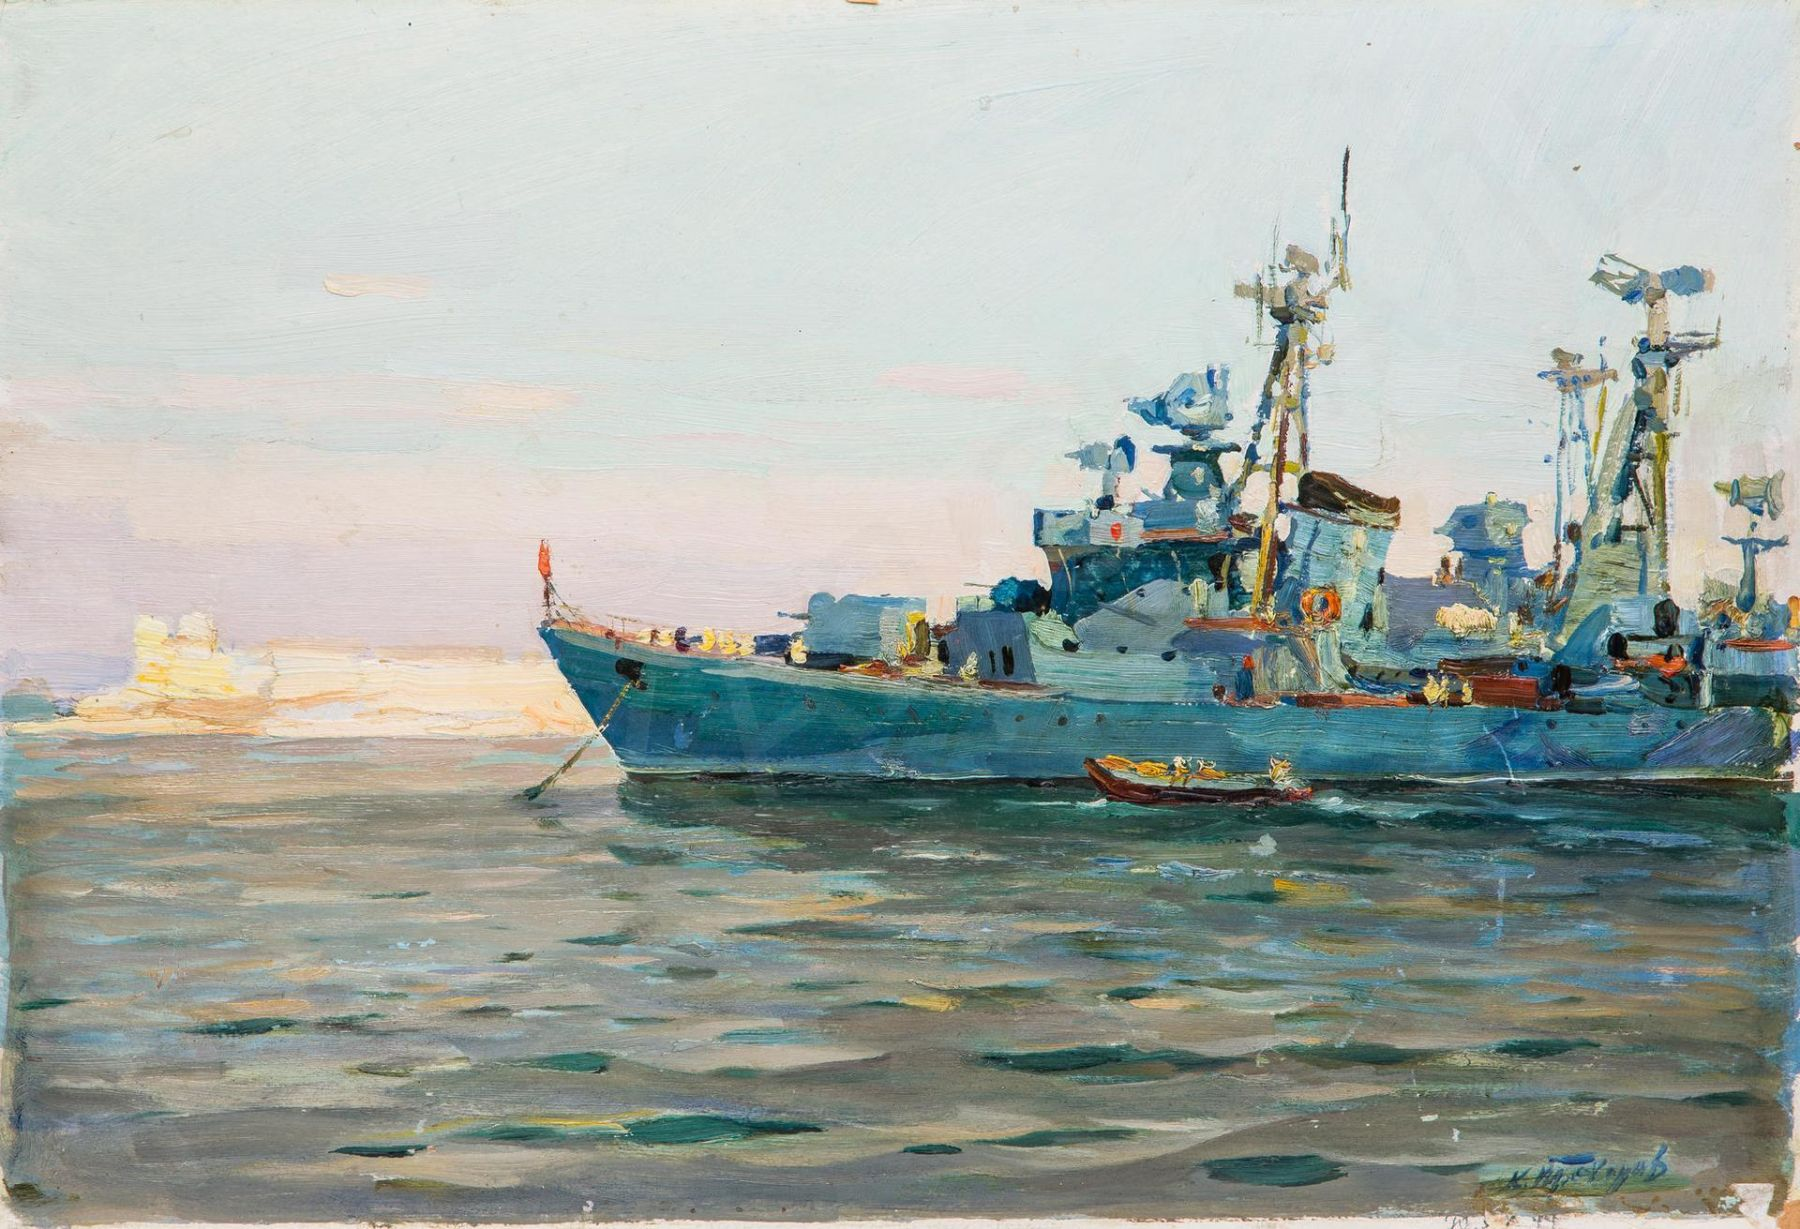 Destroyer before going to sea.